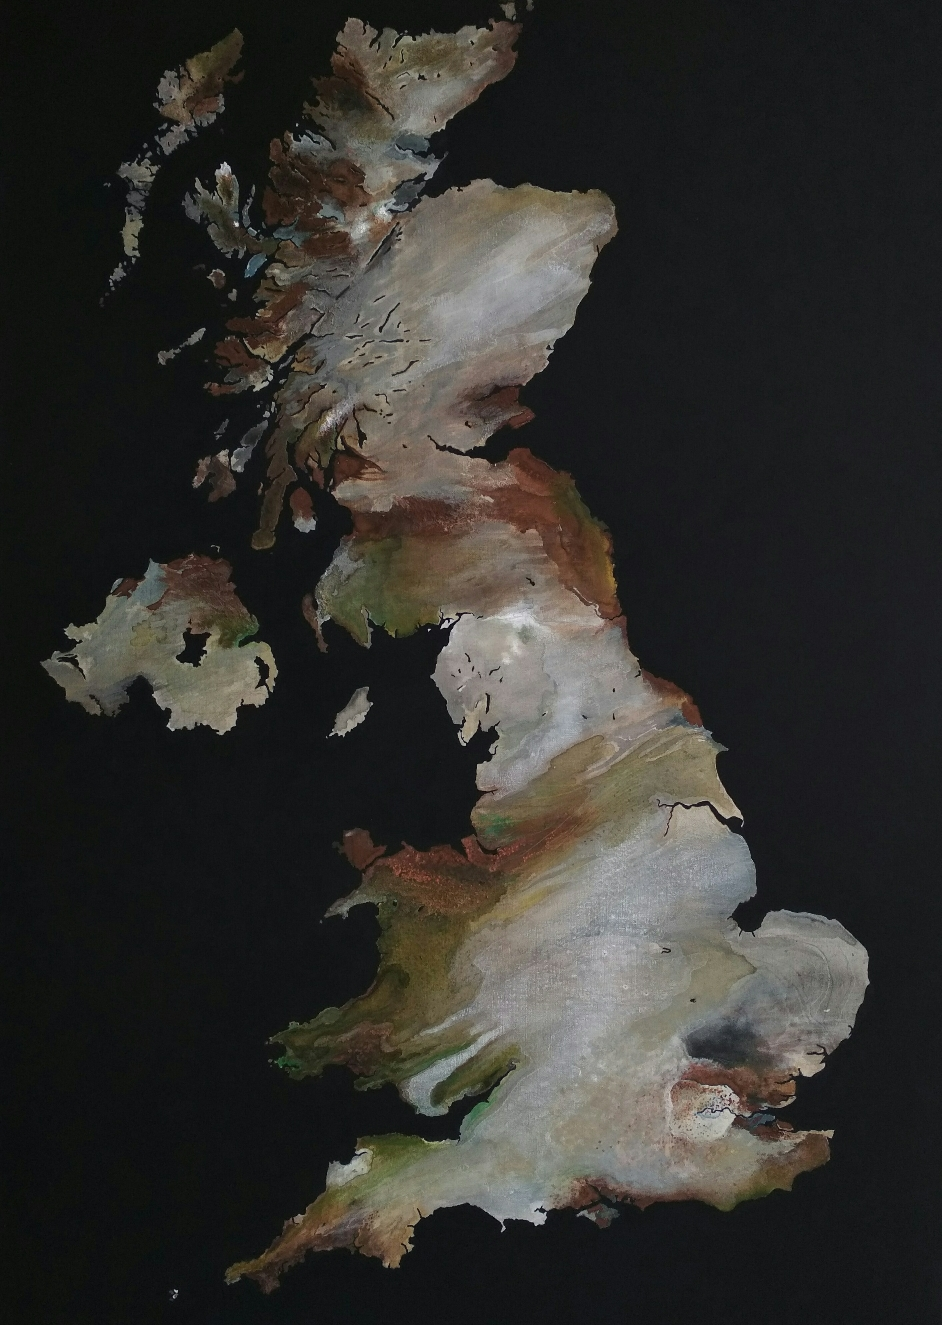 Remote Sensing UK, 60x90cm, in private collection